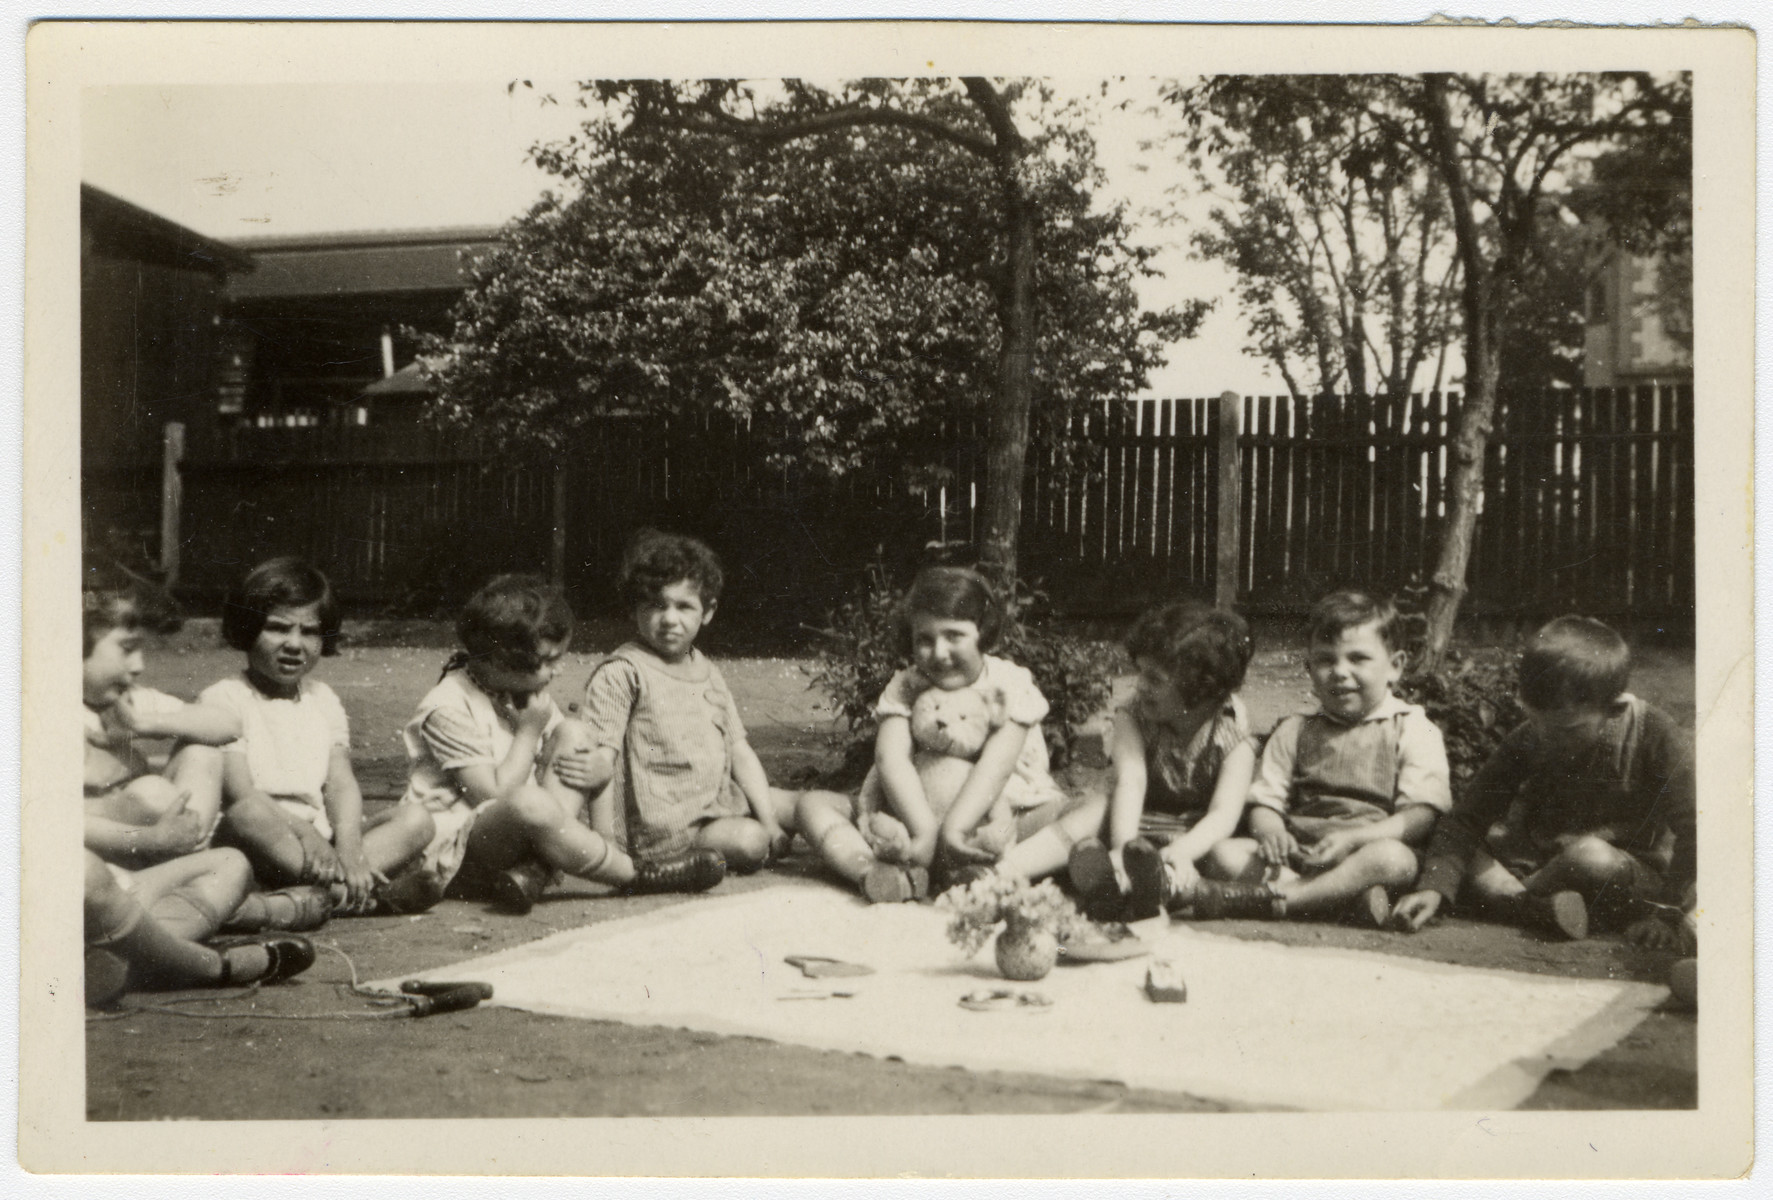 Children in a Mannheim preschool sit outside on the lawm.  Margot Schumm is seated in the center, holding a teddy bear,